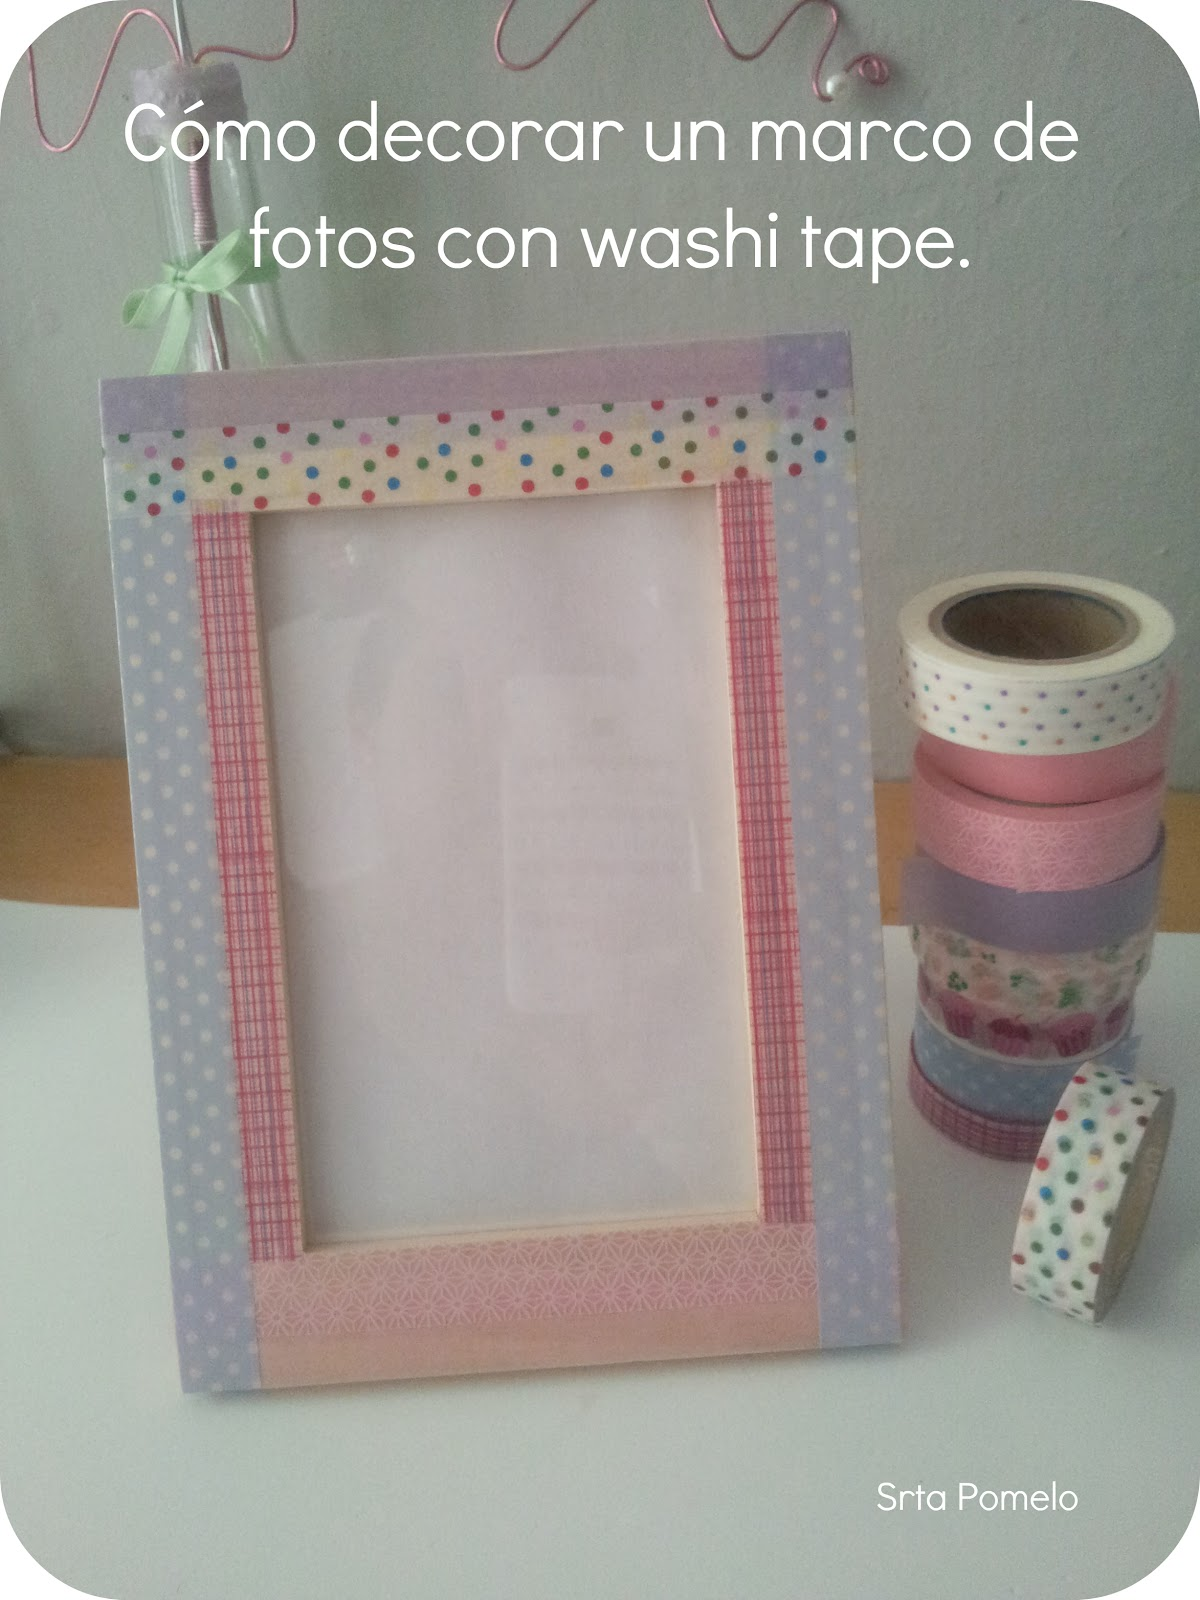 Decorar Marco Fotos Srta Pomelo Tutorial Cómo Decorar Un Marco De Fotos Con